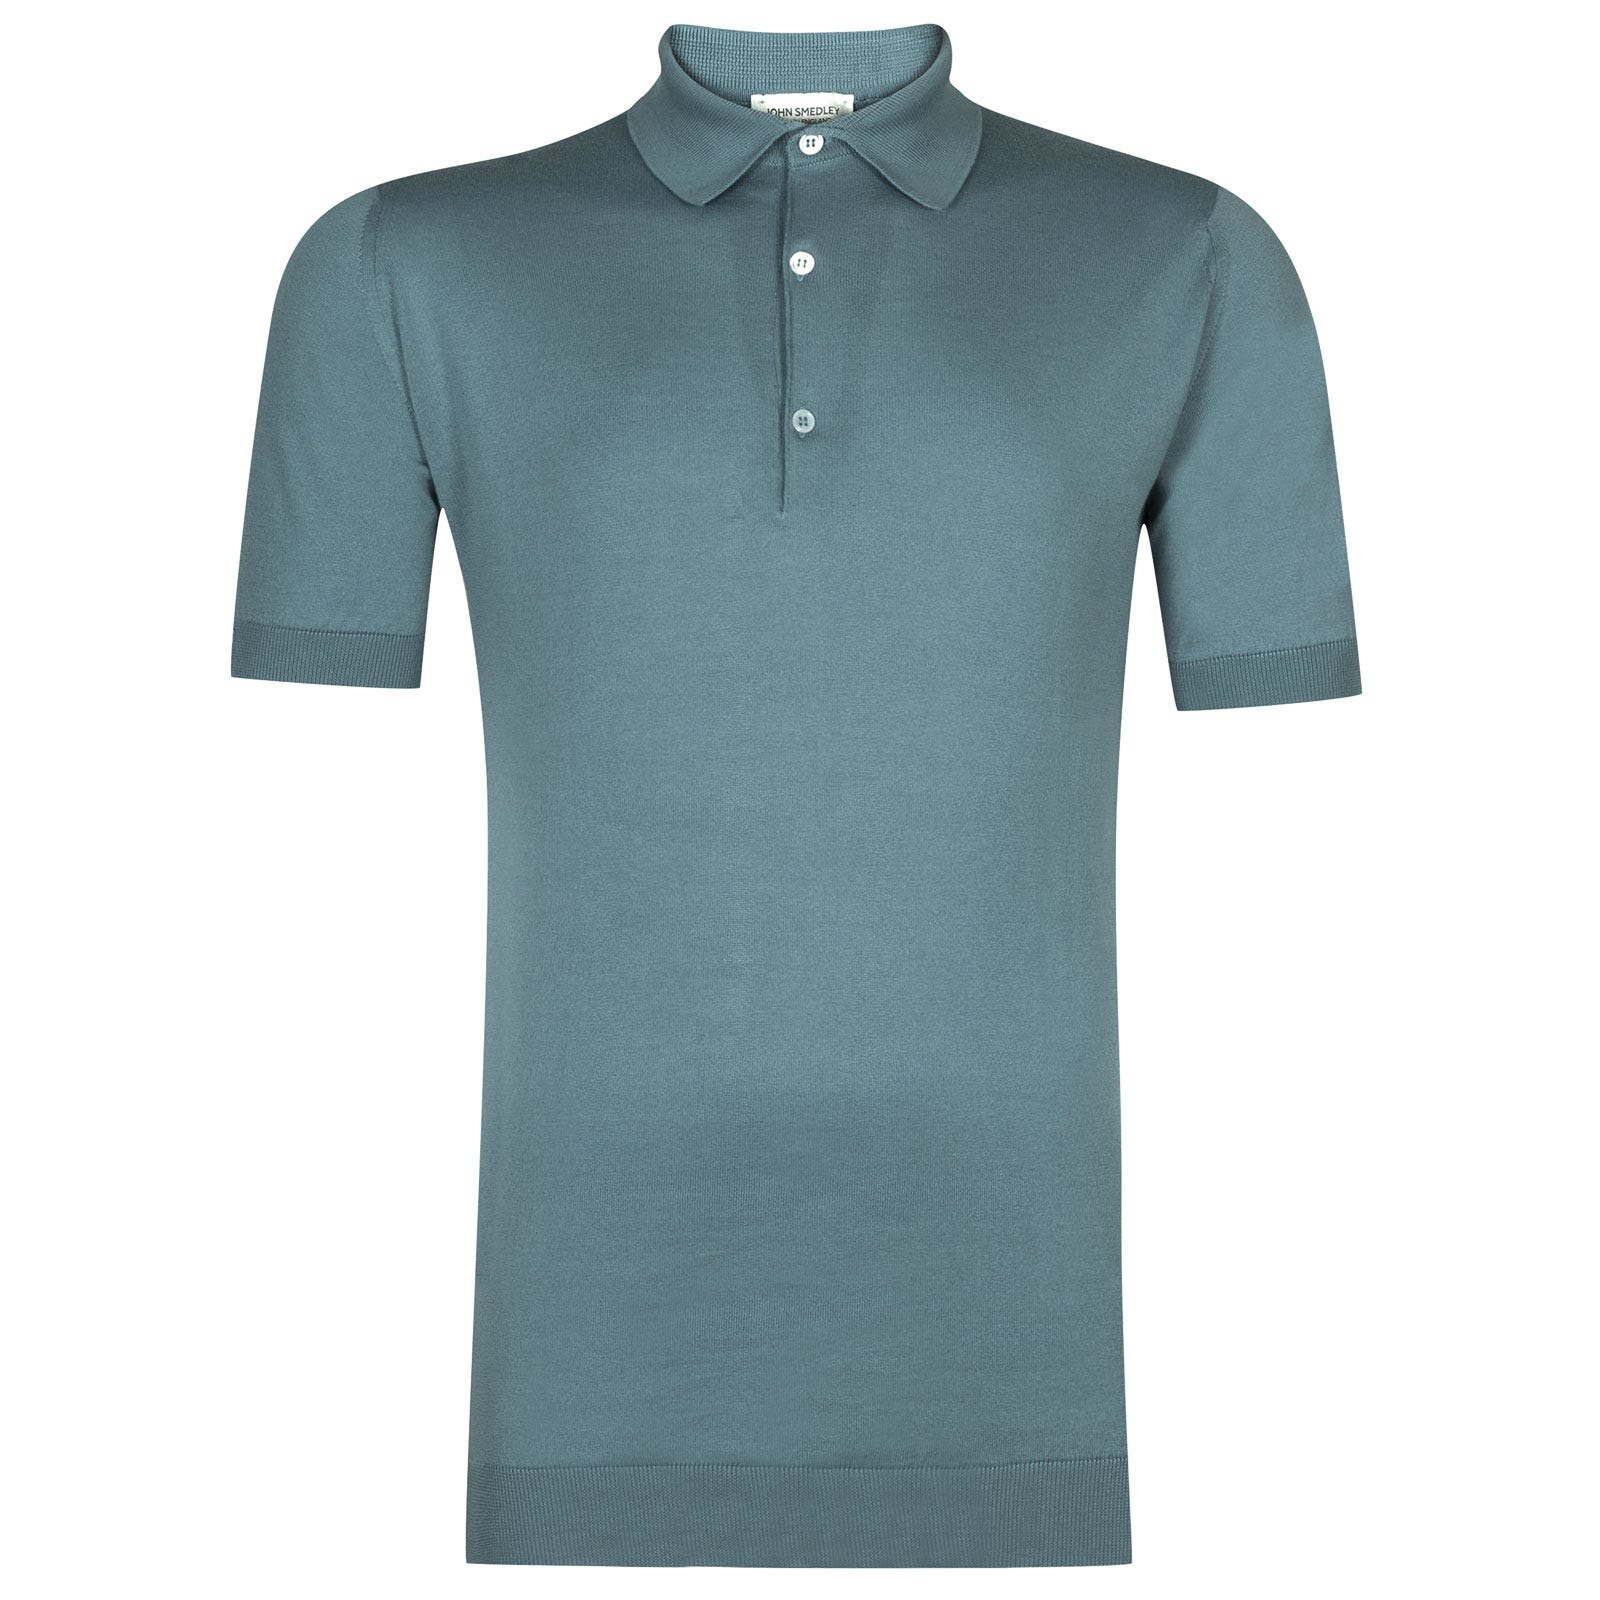 John Smedley adrian Sea Island Cotton Shirt in Summit Blue-M